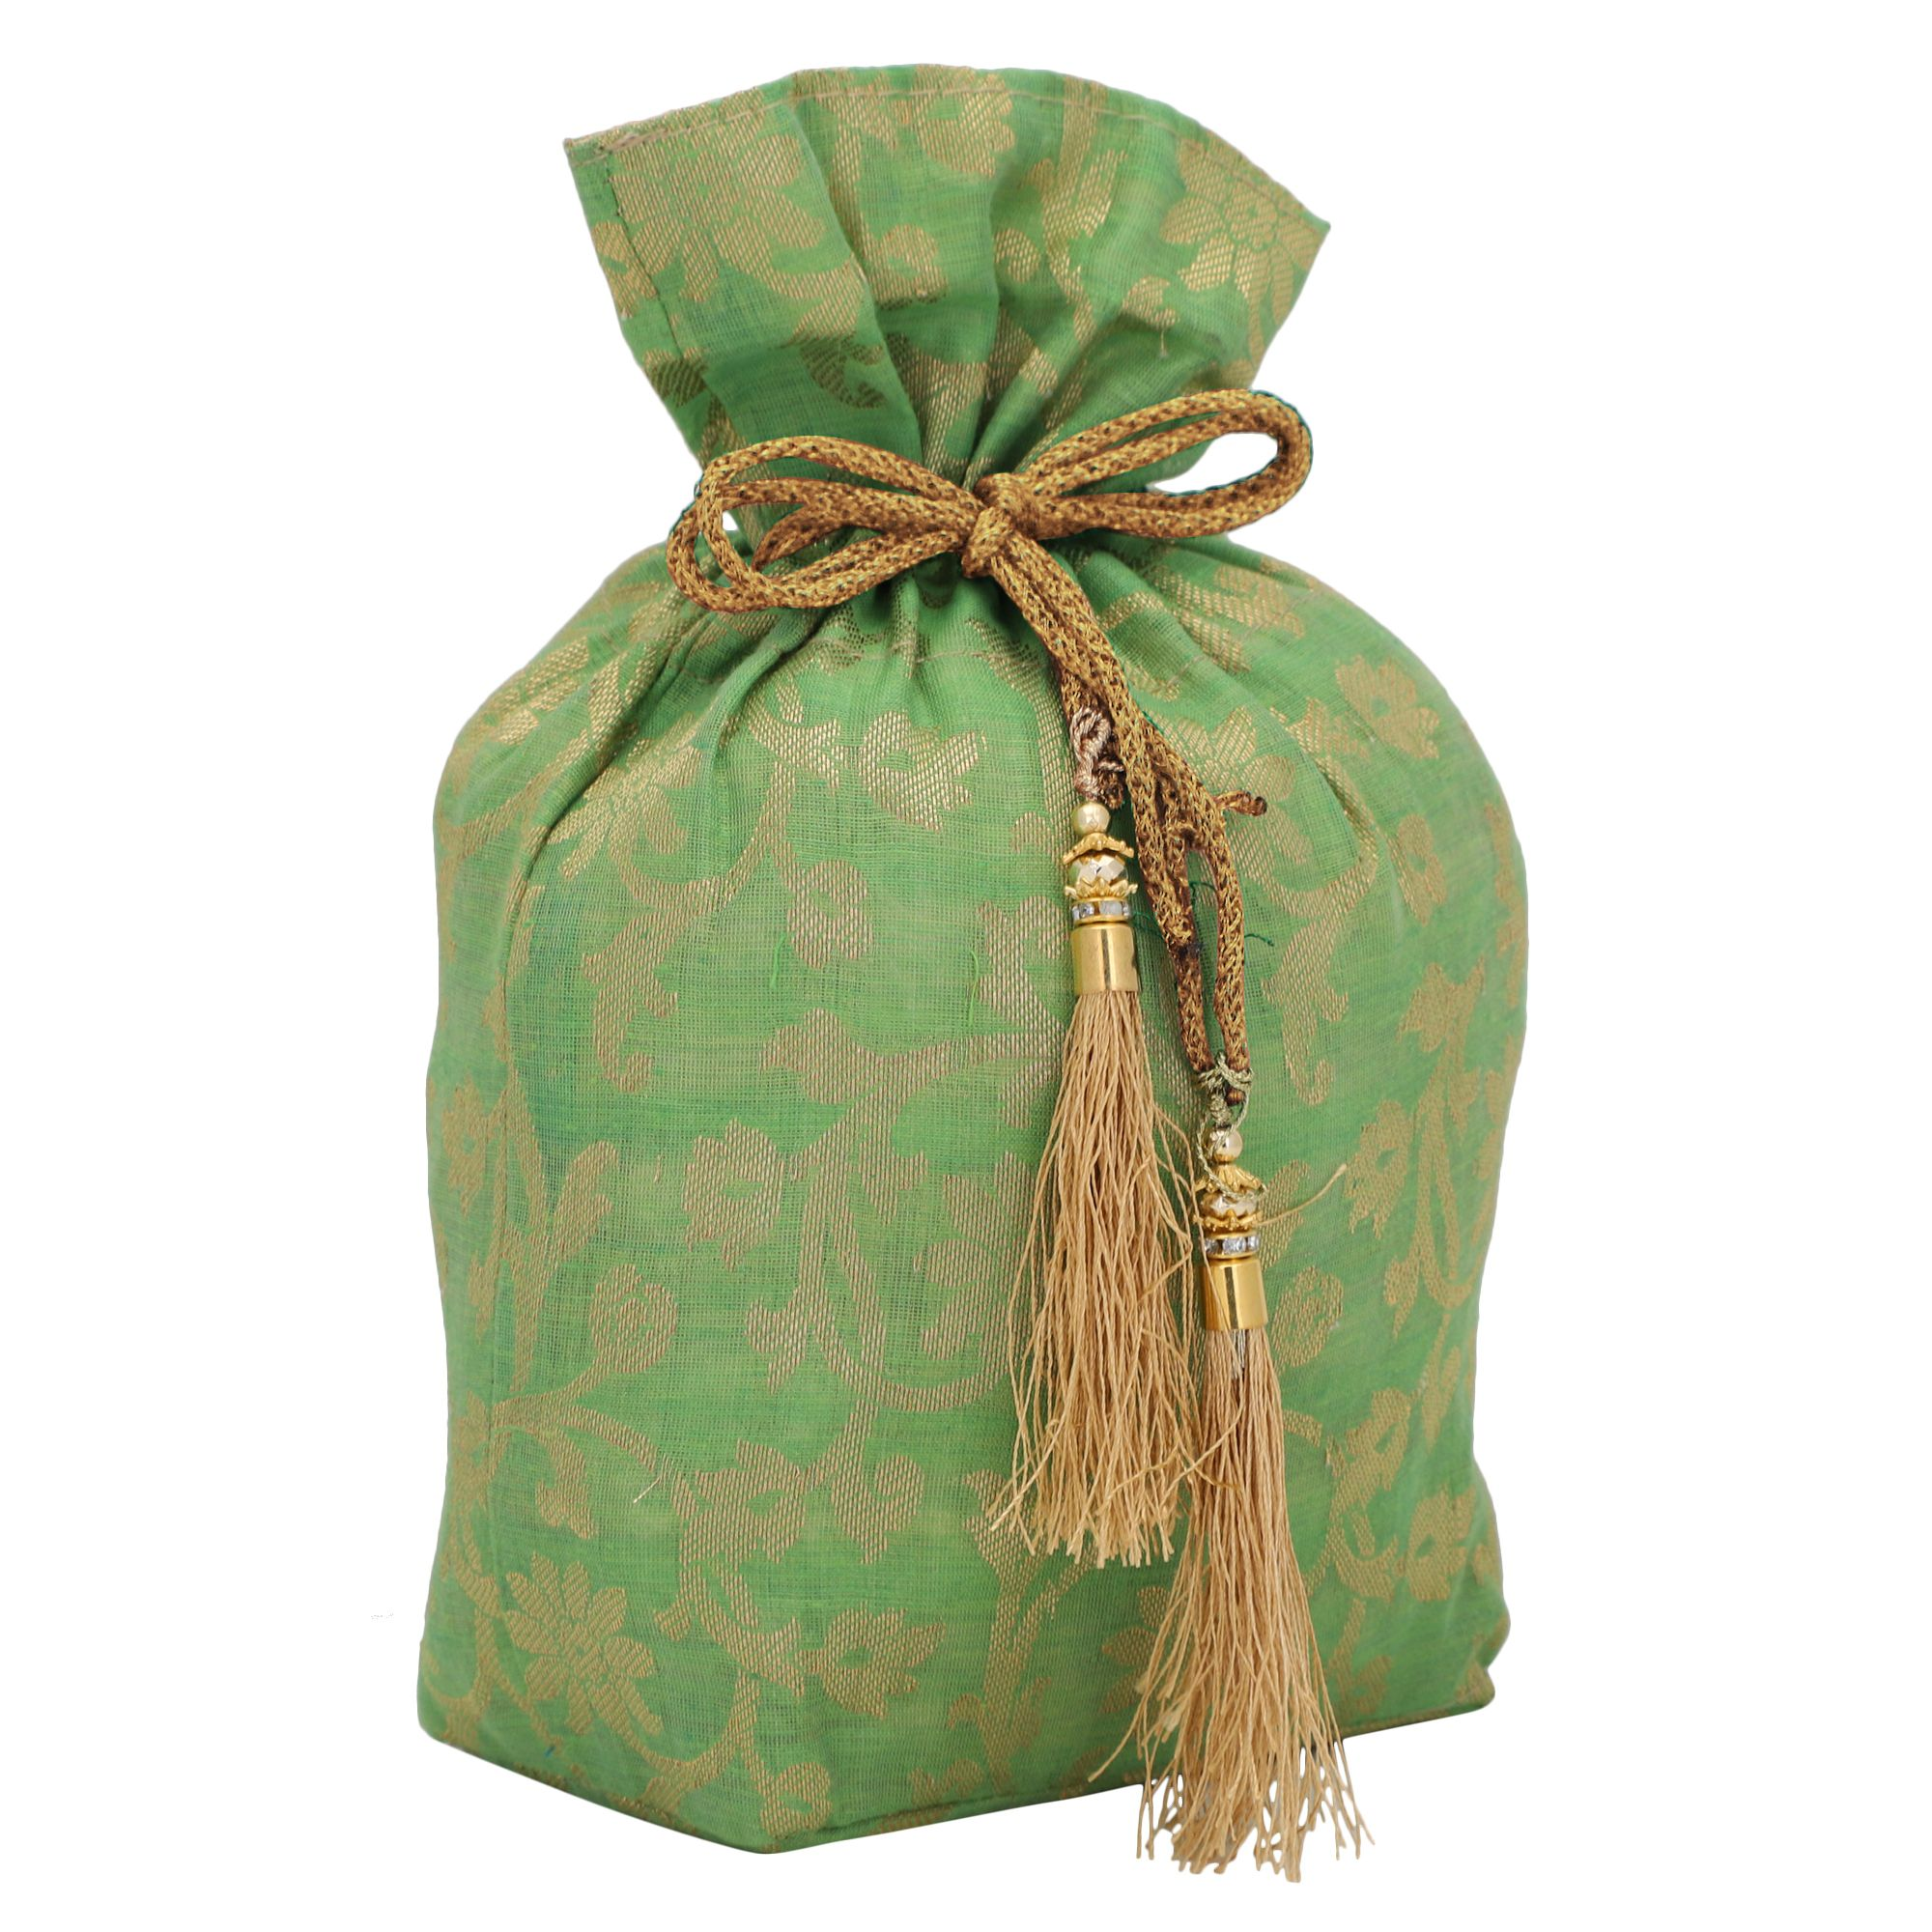 Banarasi Chanderi Jacquard Potli Bag in Light Green 1